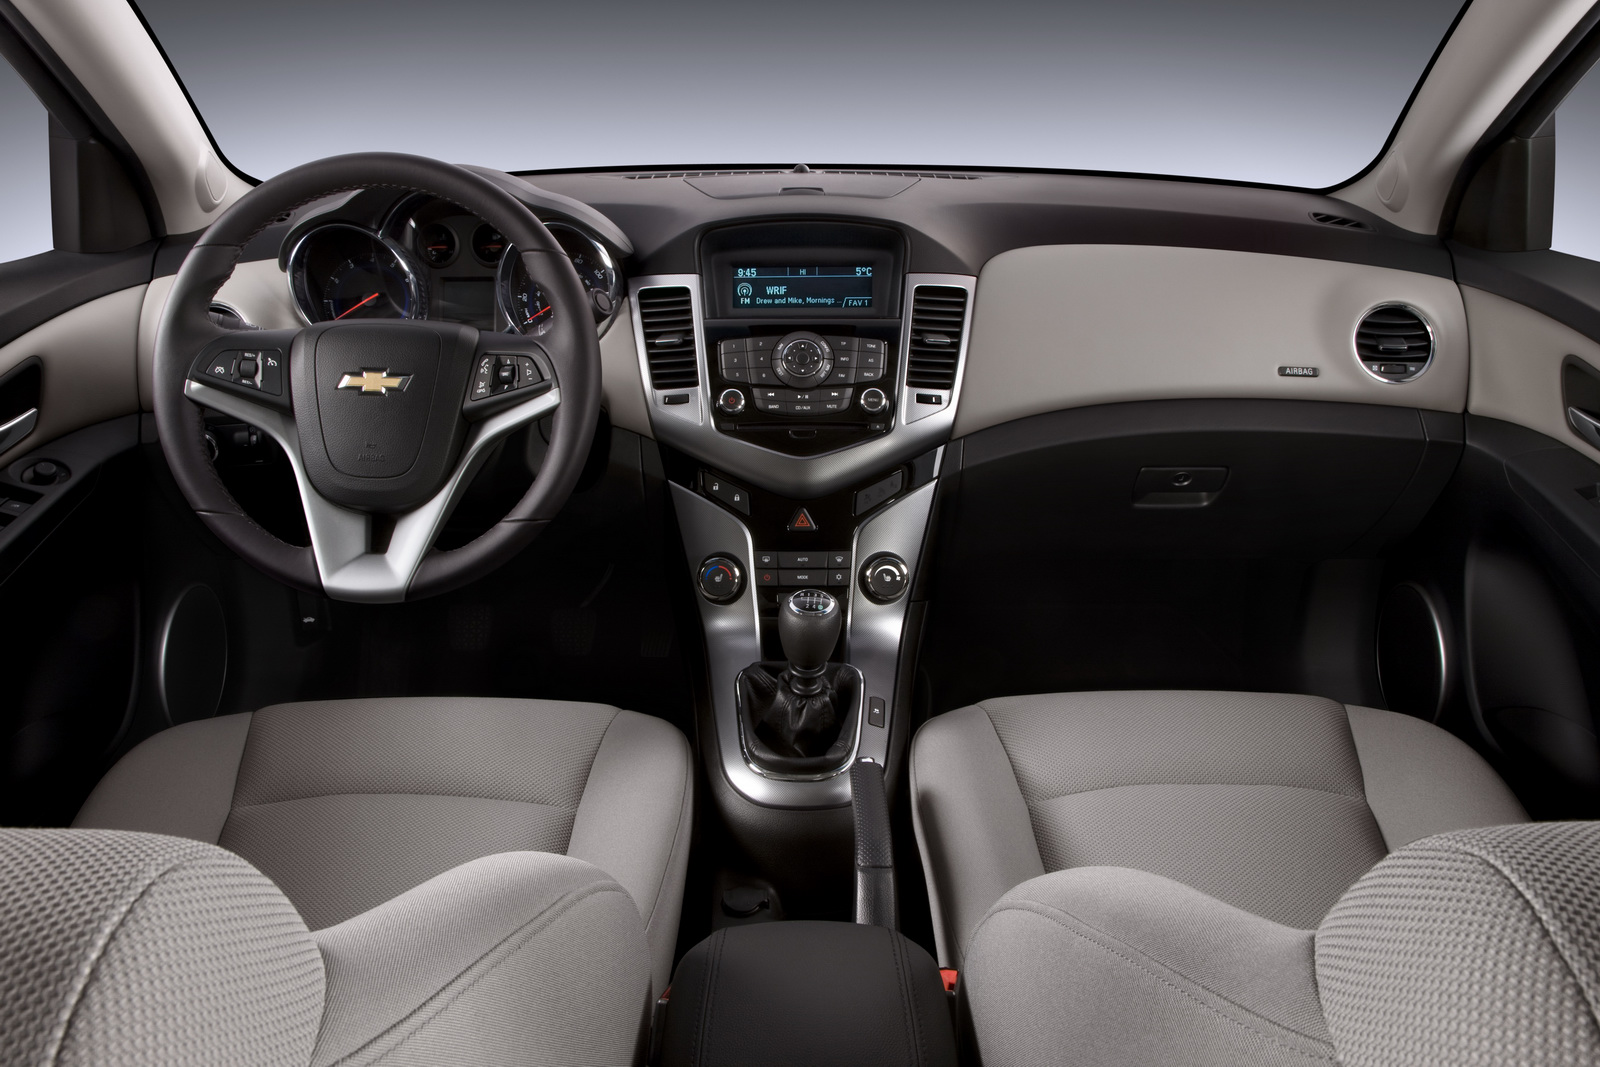 Cruze chevy cruze ltz review : THE CHEVY CRUZE | Trini car reviews